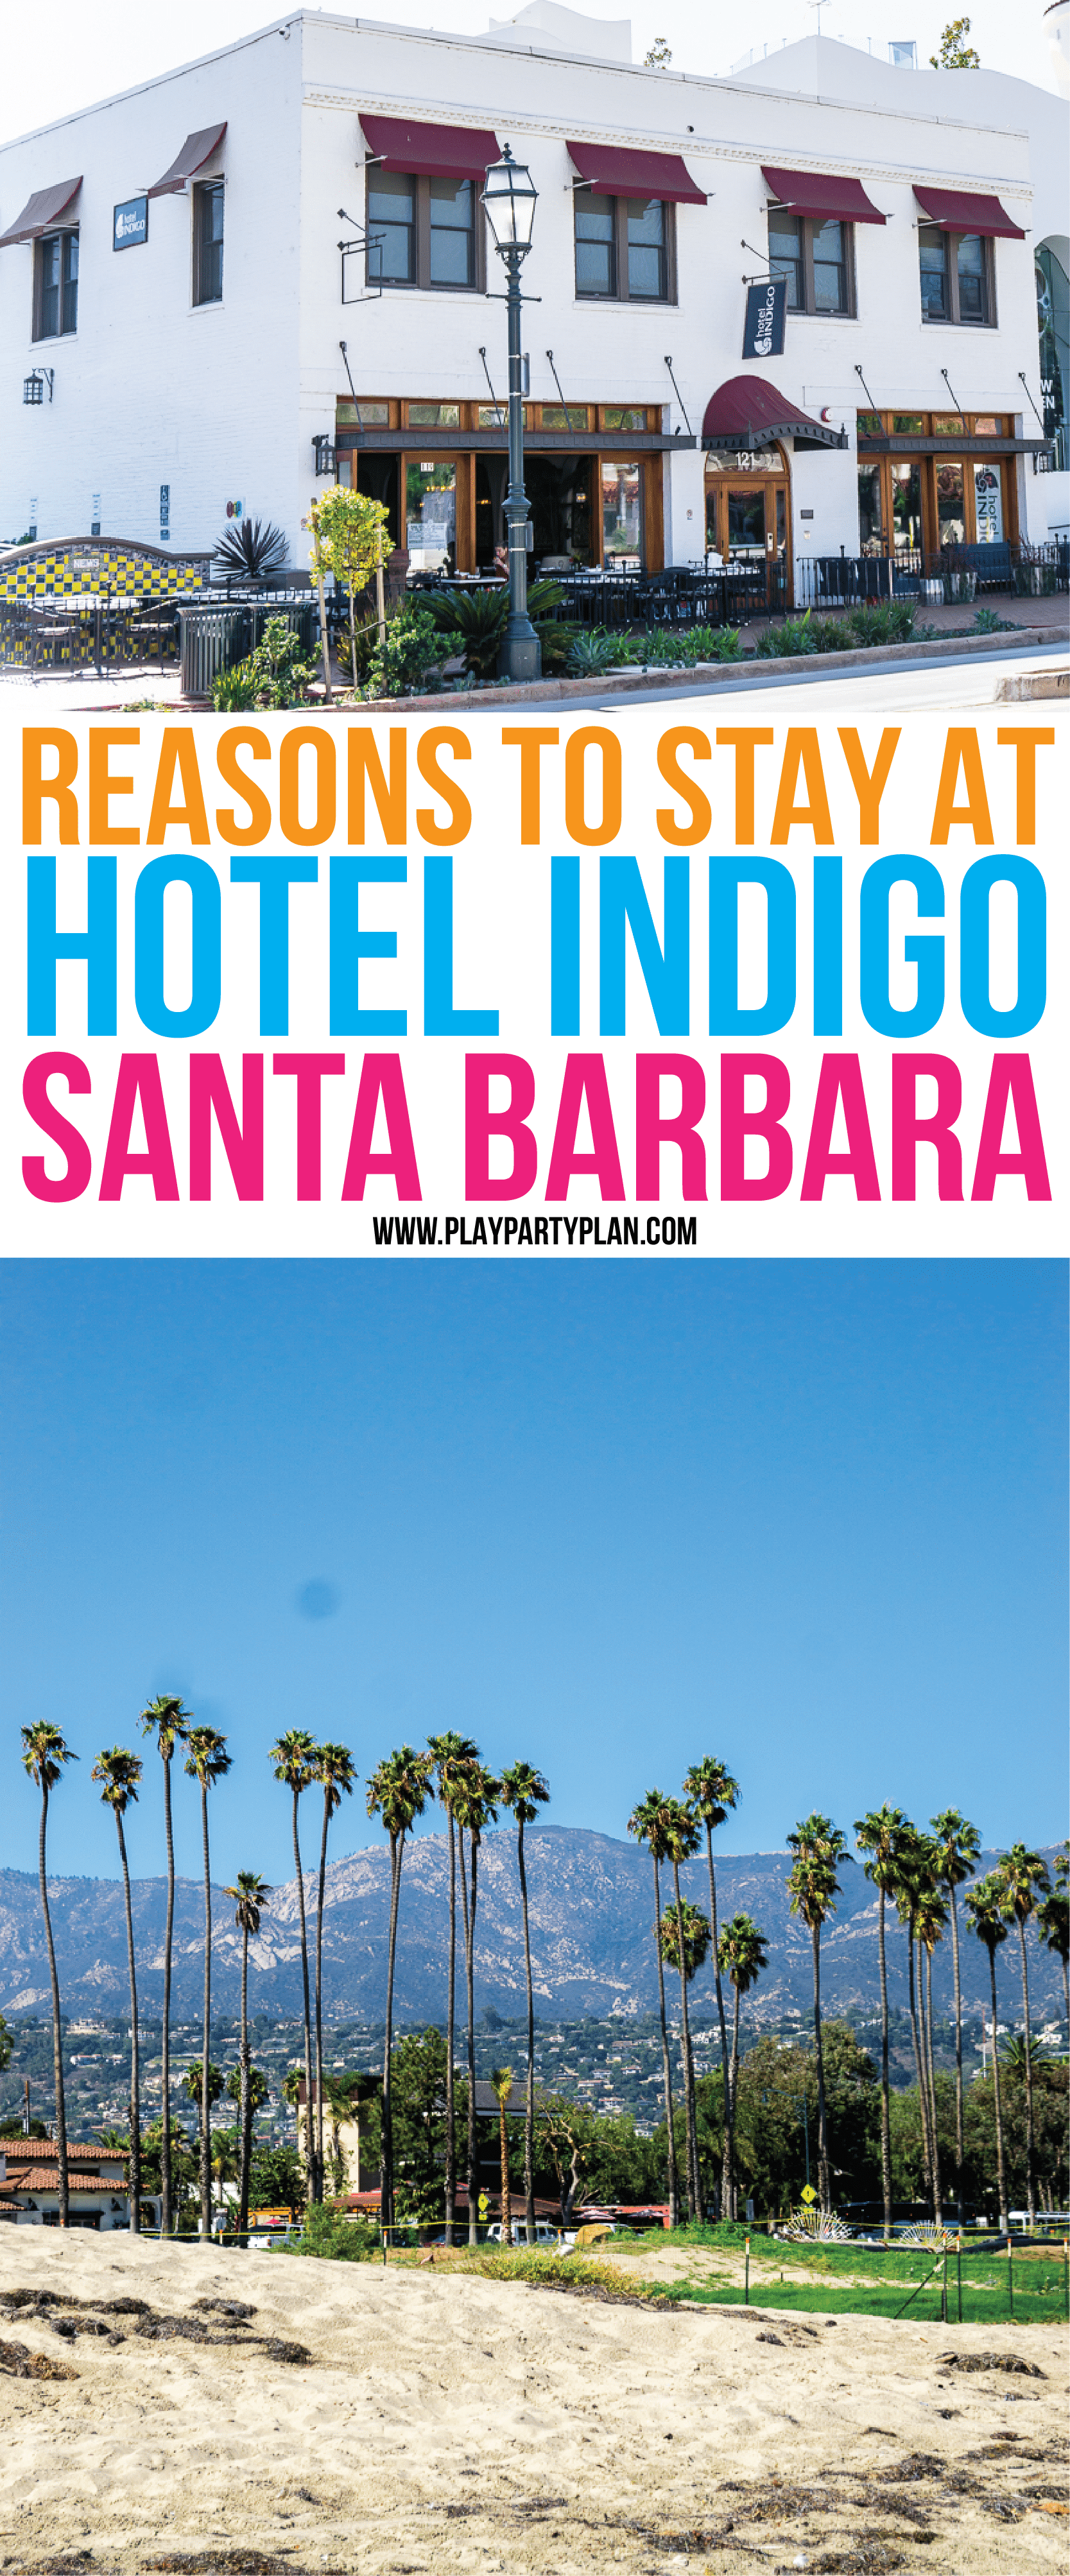 See what makes the Hotel Indigo Brand unique from other hotel chains and why Hotel Indigo Santa Barbara makes a great place to stay when you visit California! via @playpartyplan